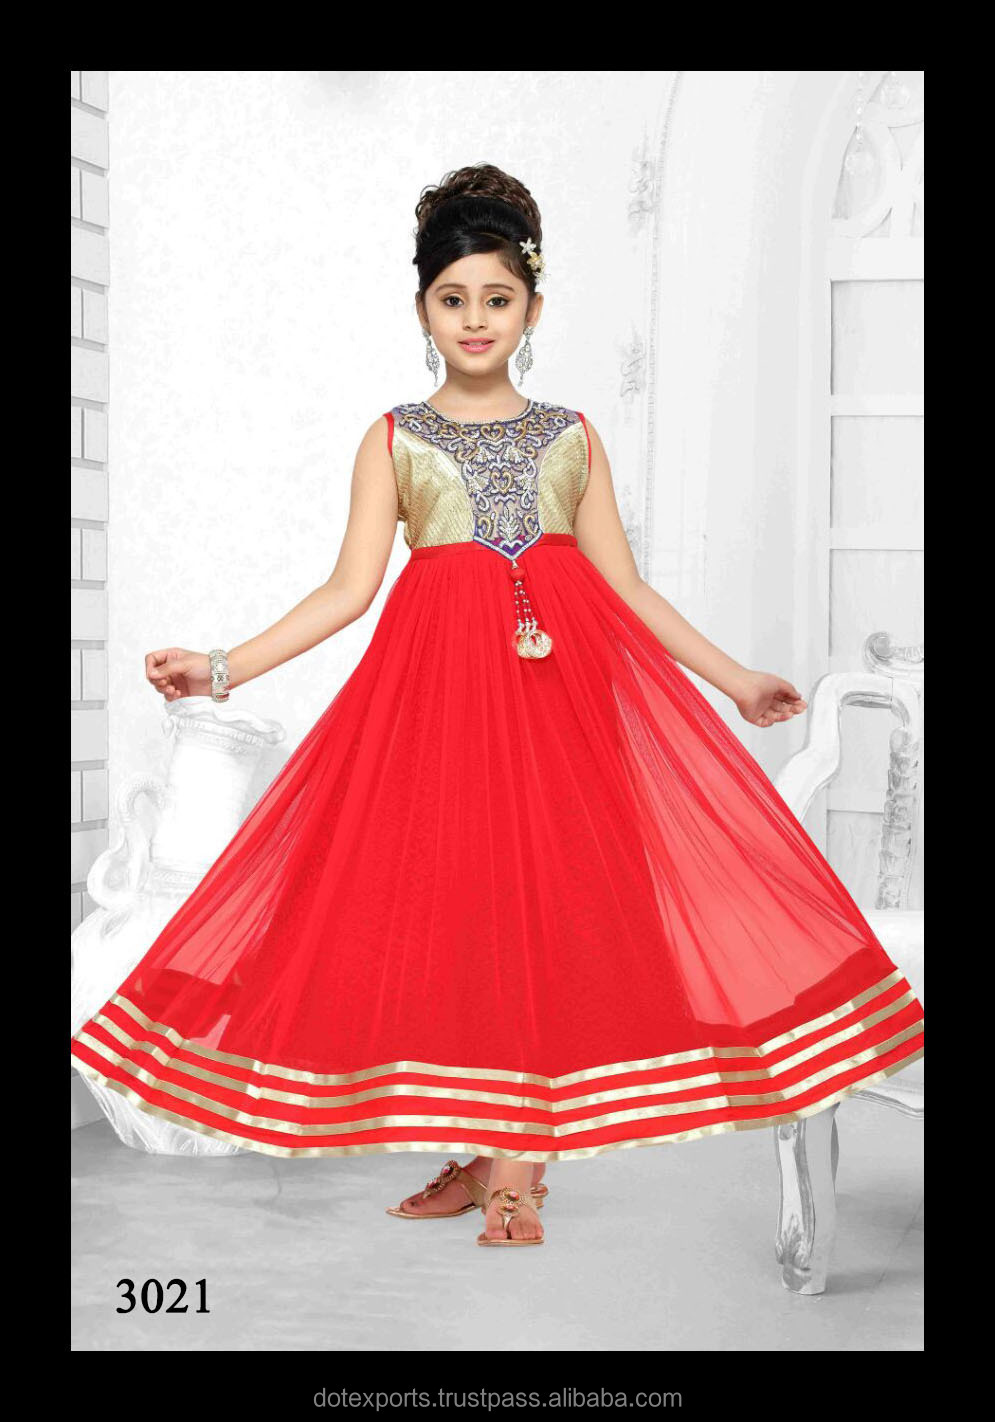 Evening Gown/frock Designs For Kids - Buy Kids Evening Gowns,Designs ...